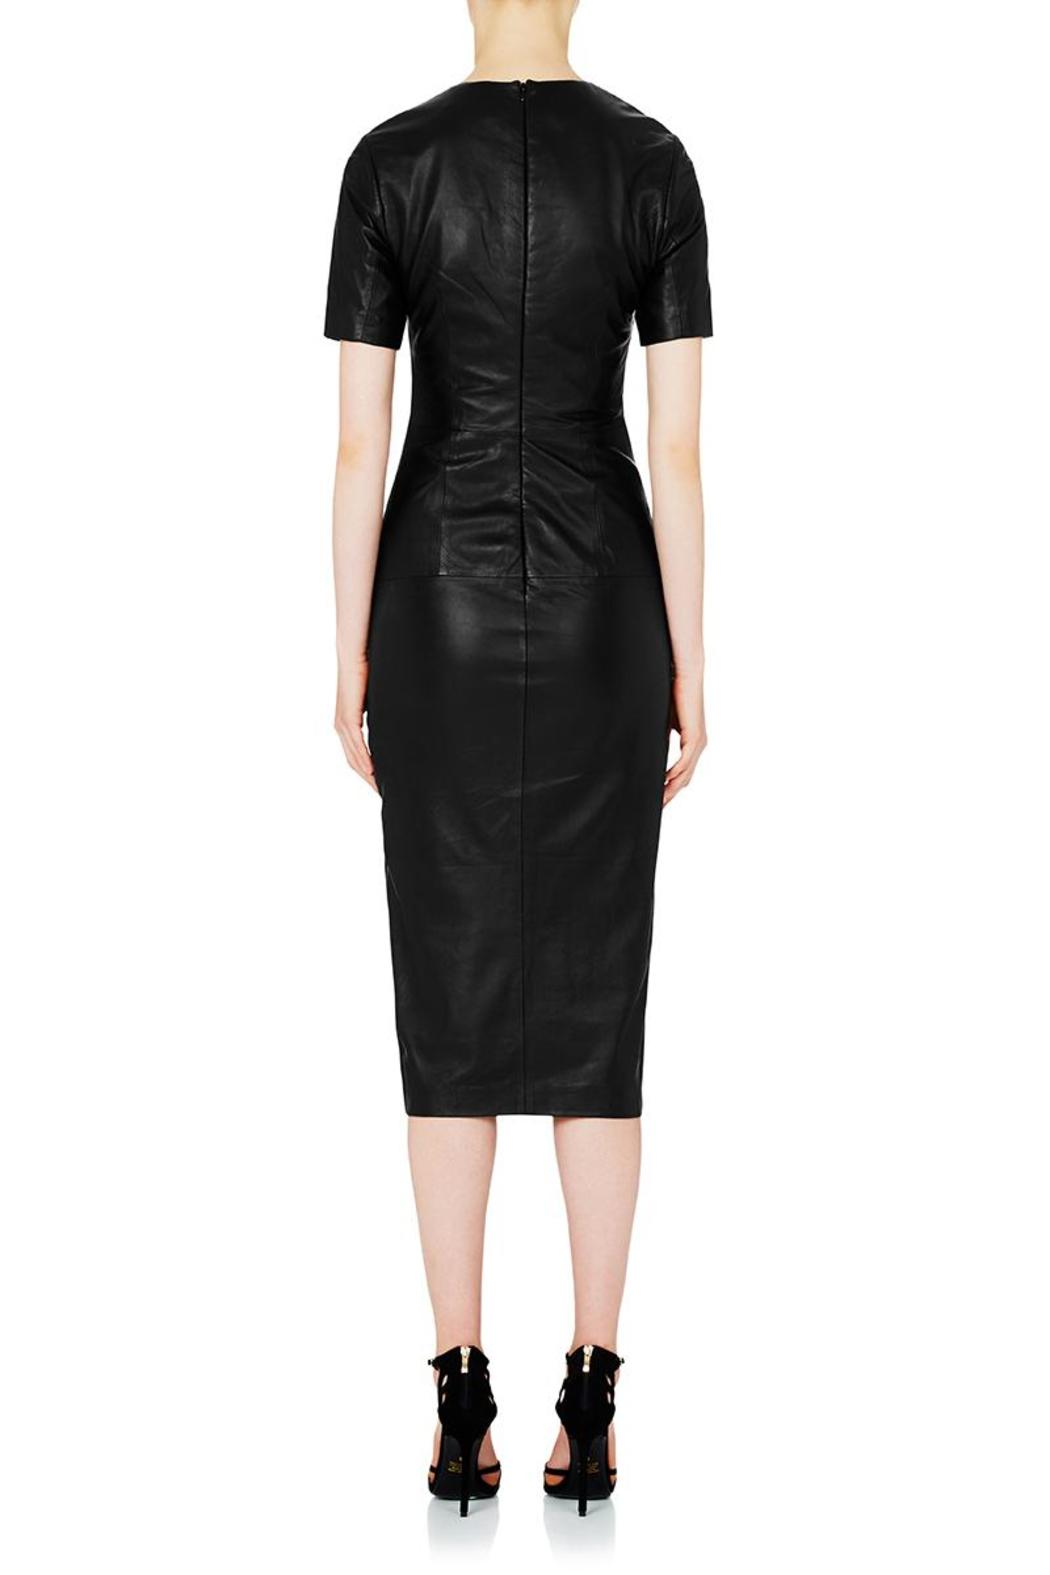 Rebecca Vallance Jane Fonda Leather Dress From Toronto By